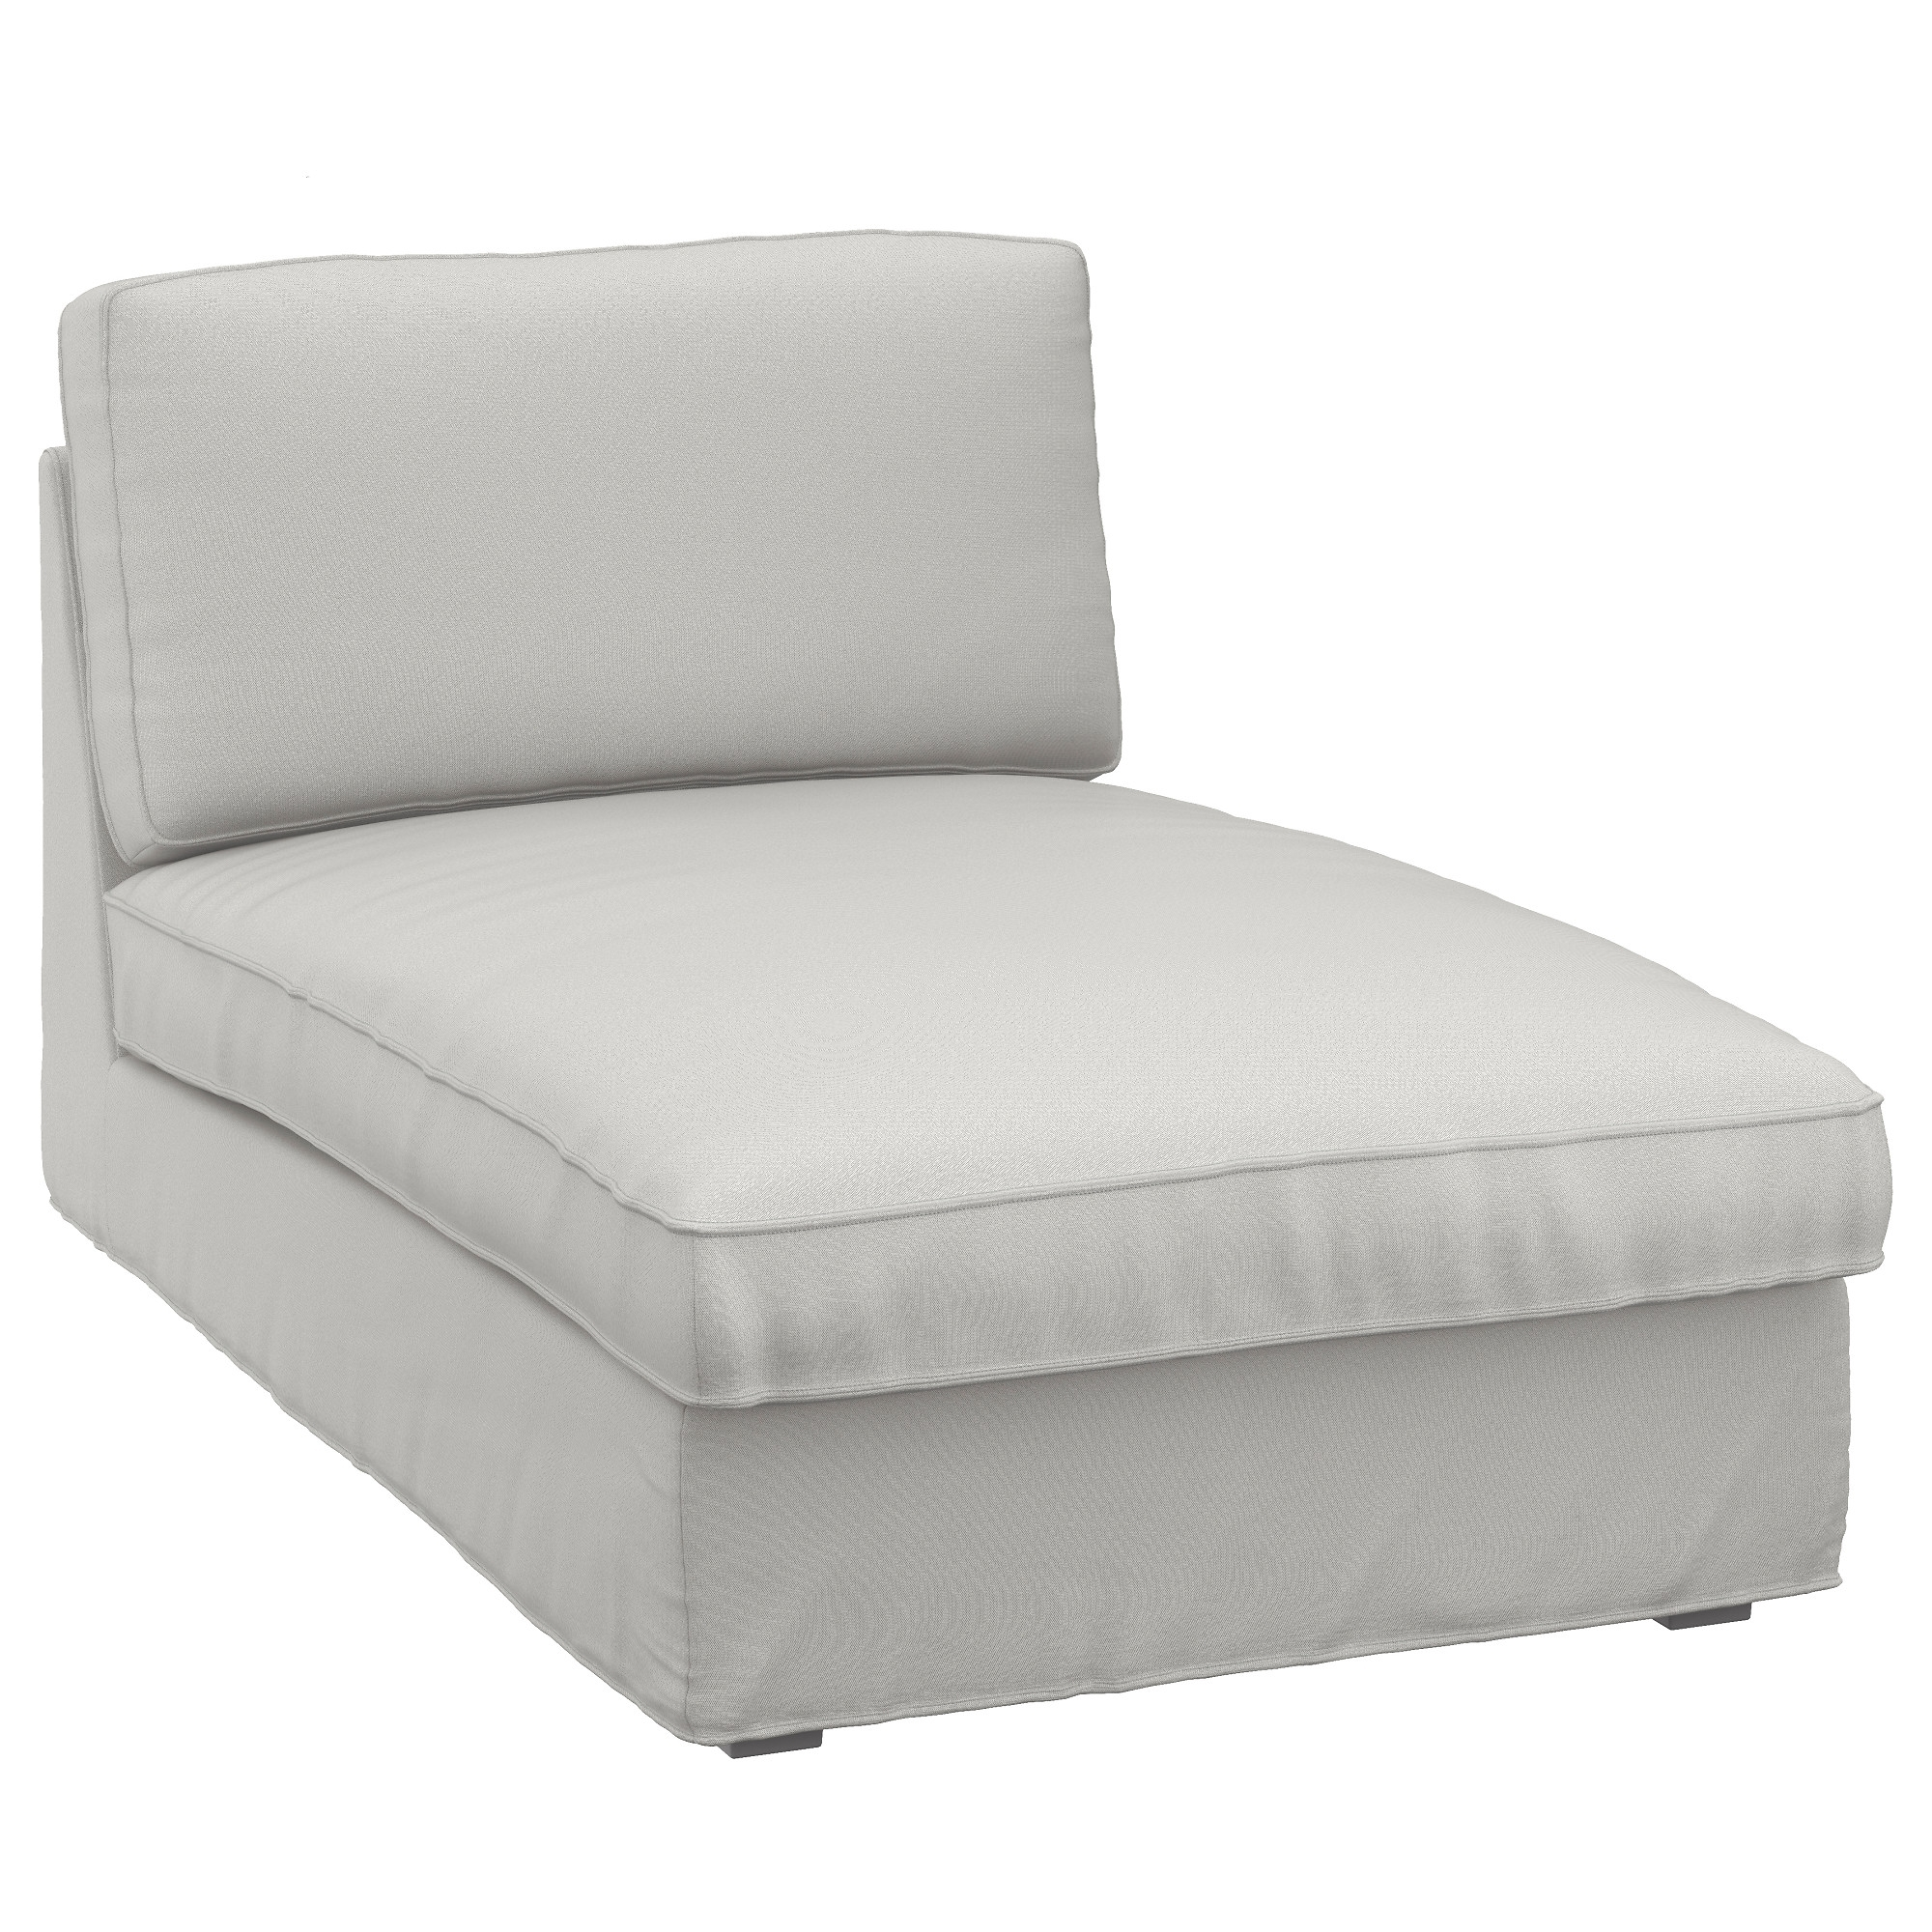 Favorite Chaise Lounges (View 12 of 15)